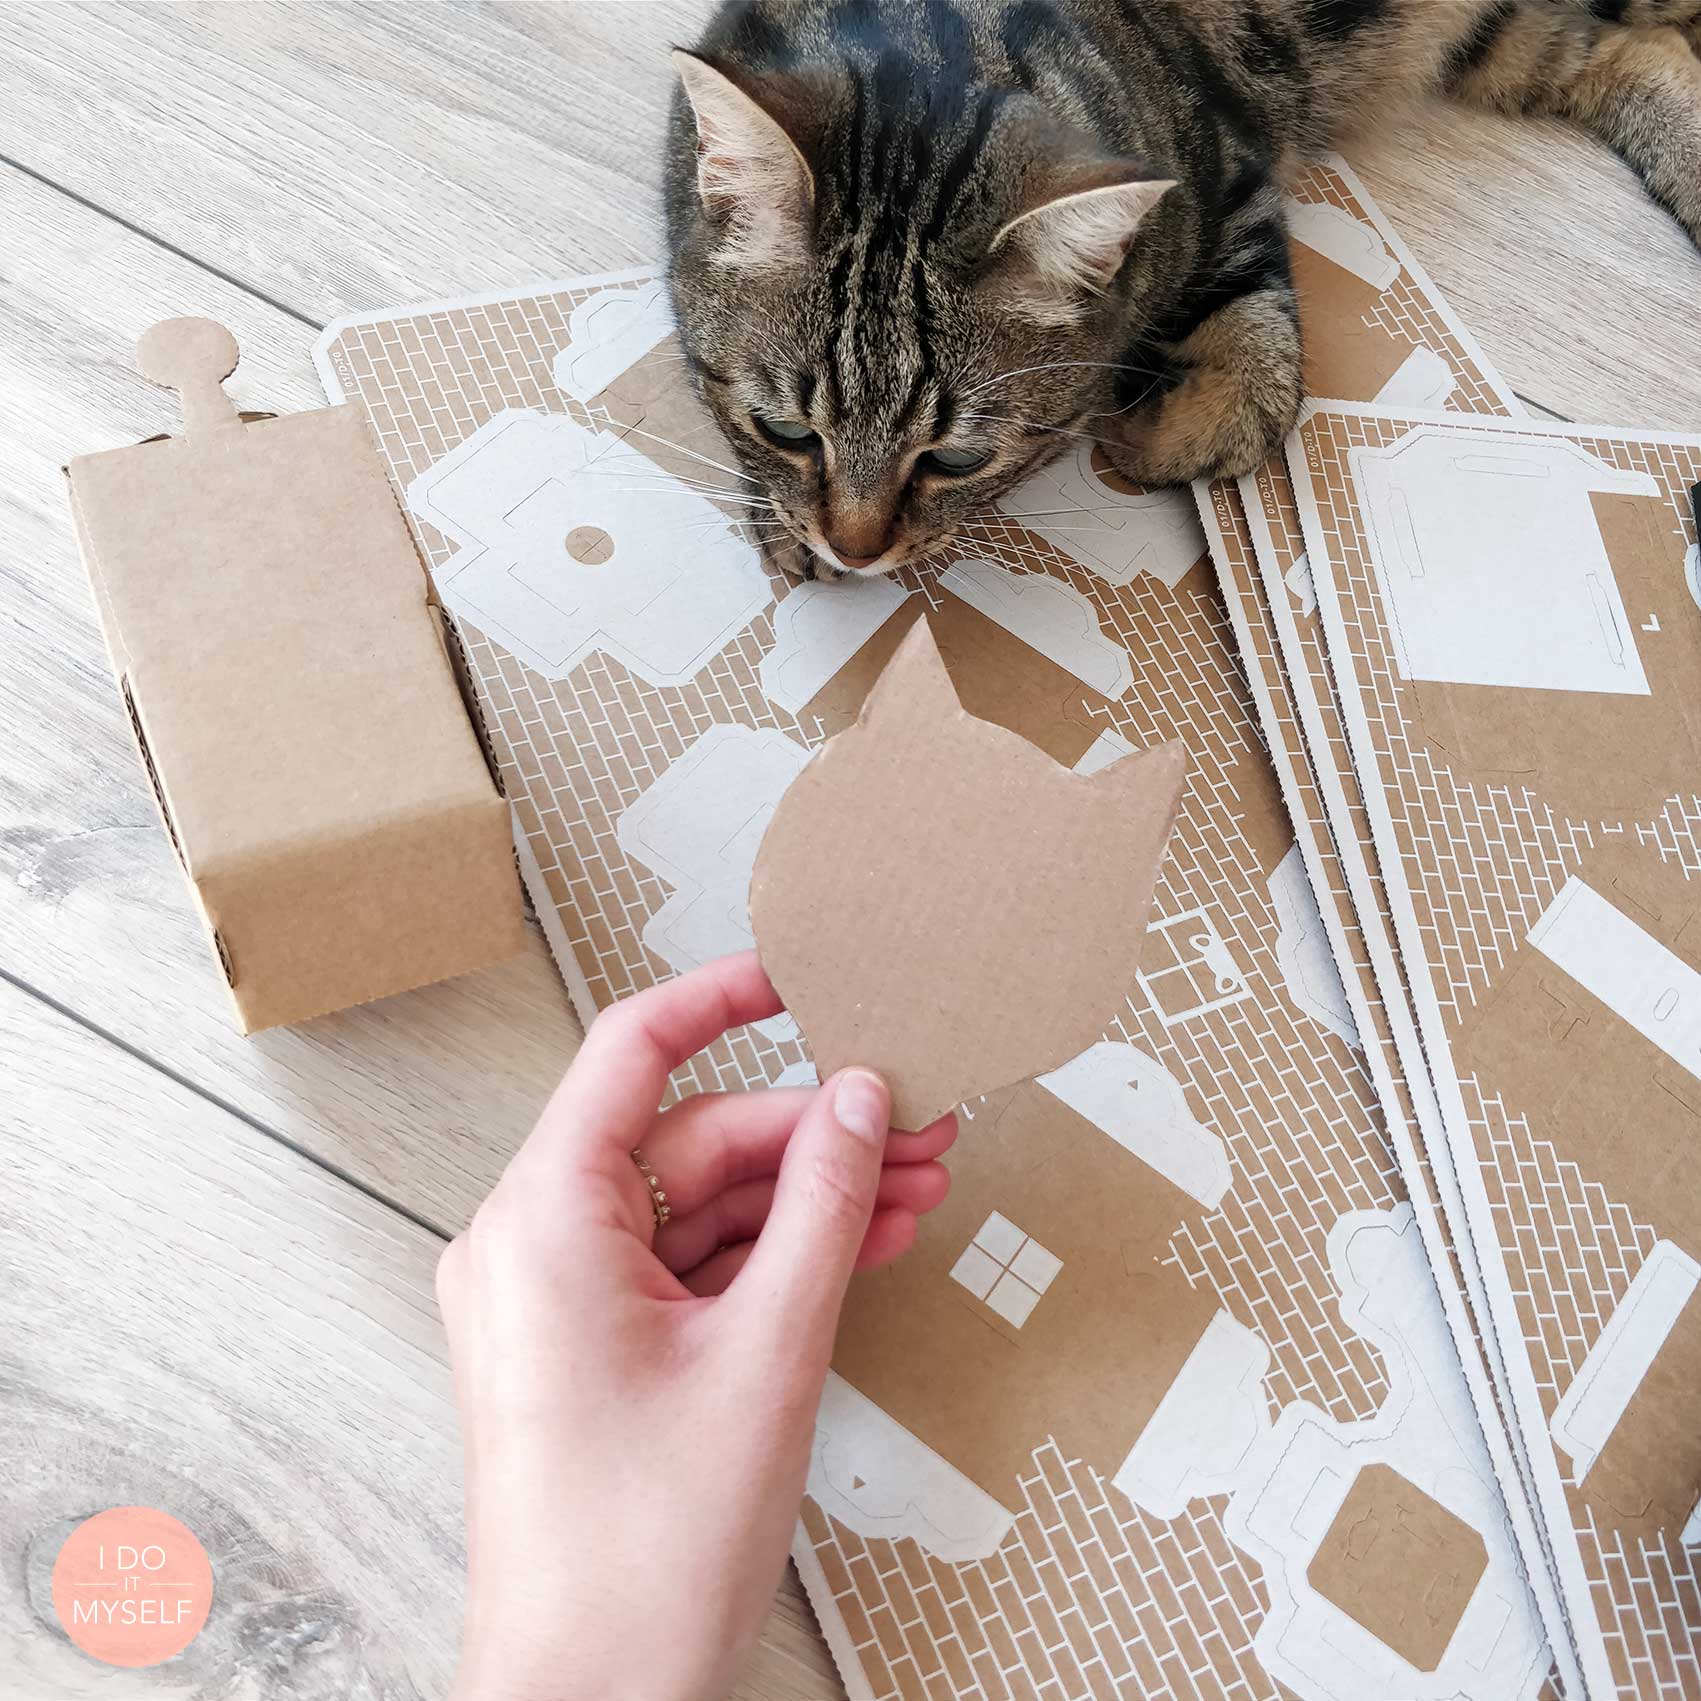 Cats and DIY